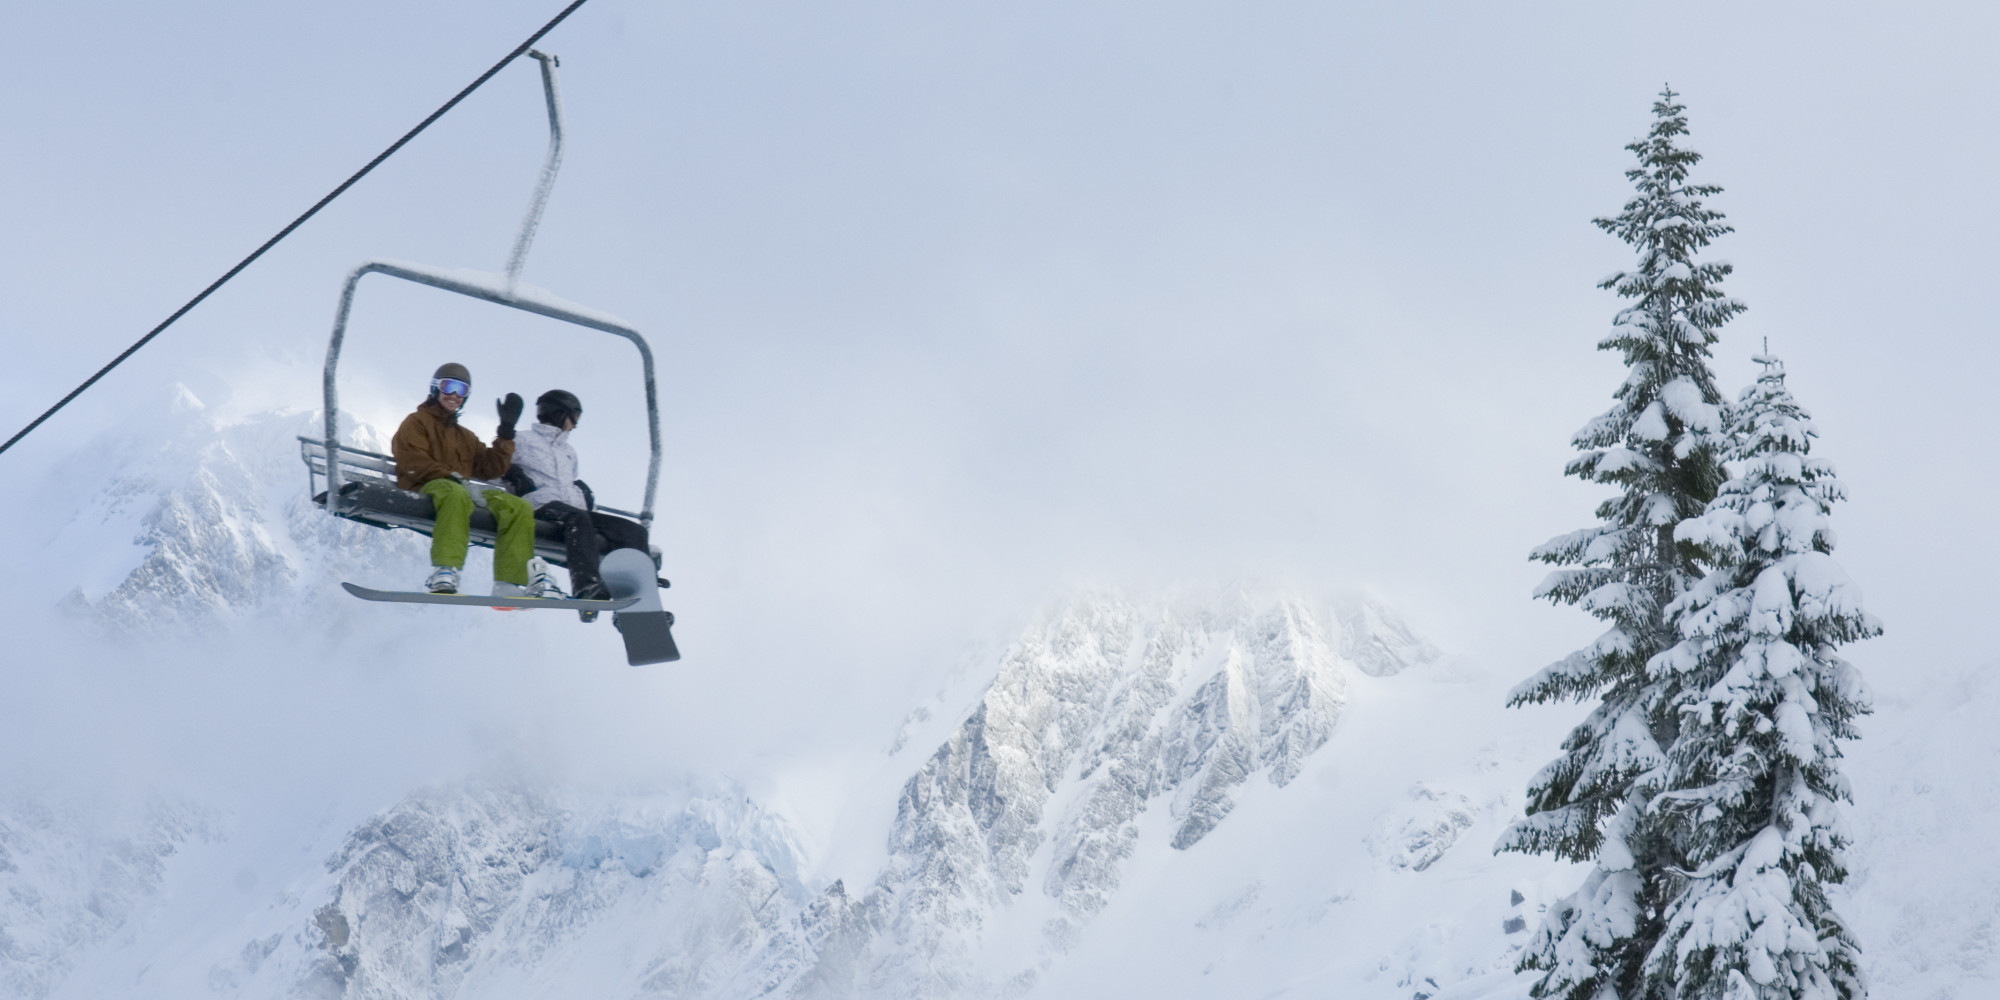 Ski Lifts and the Human Condition